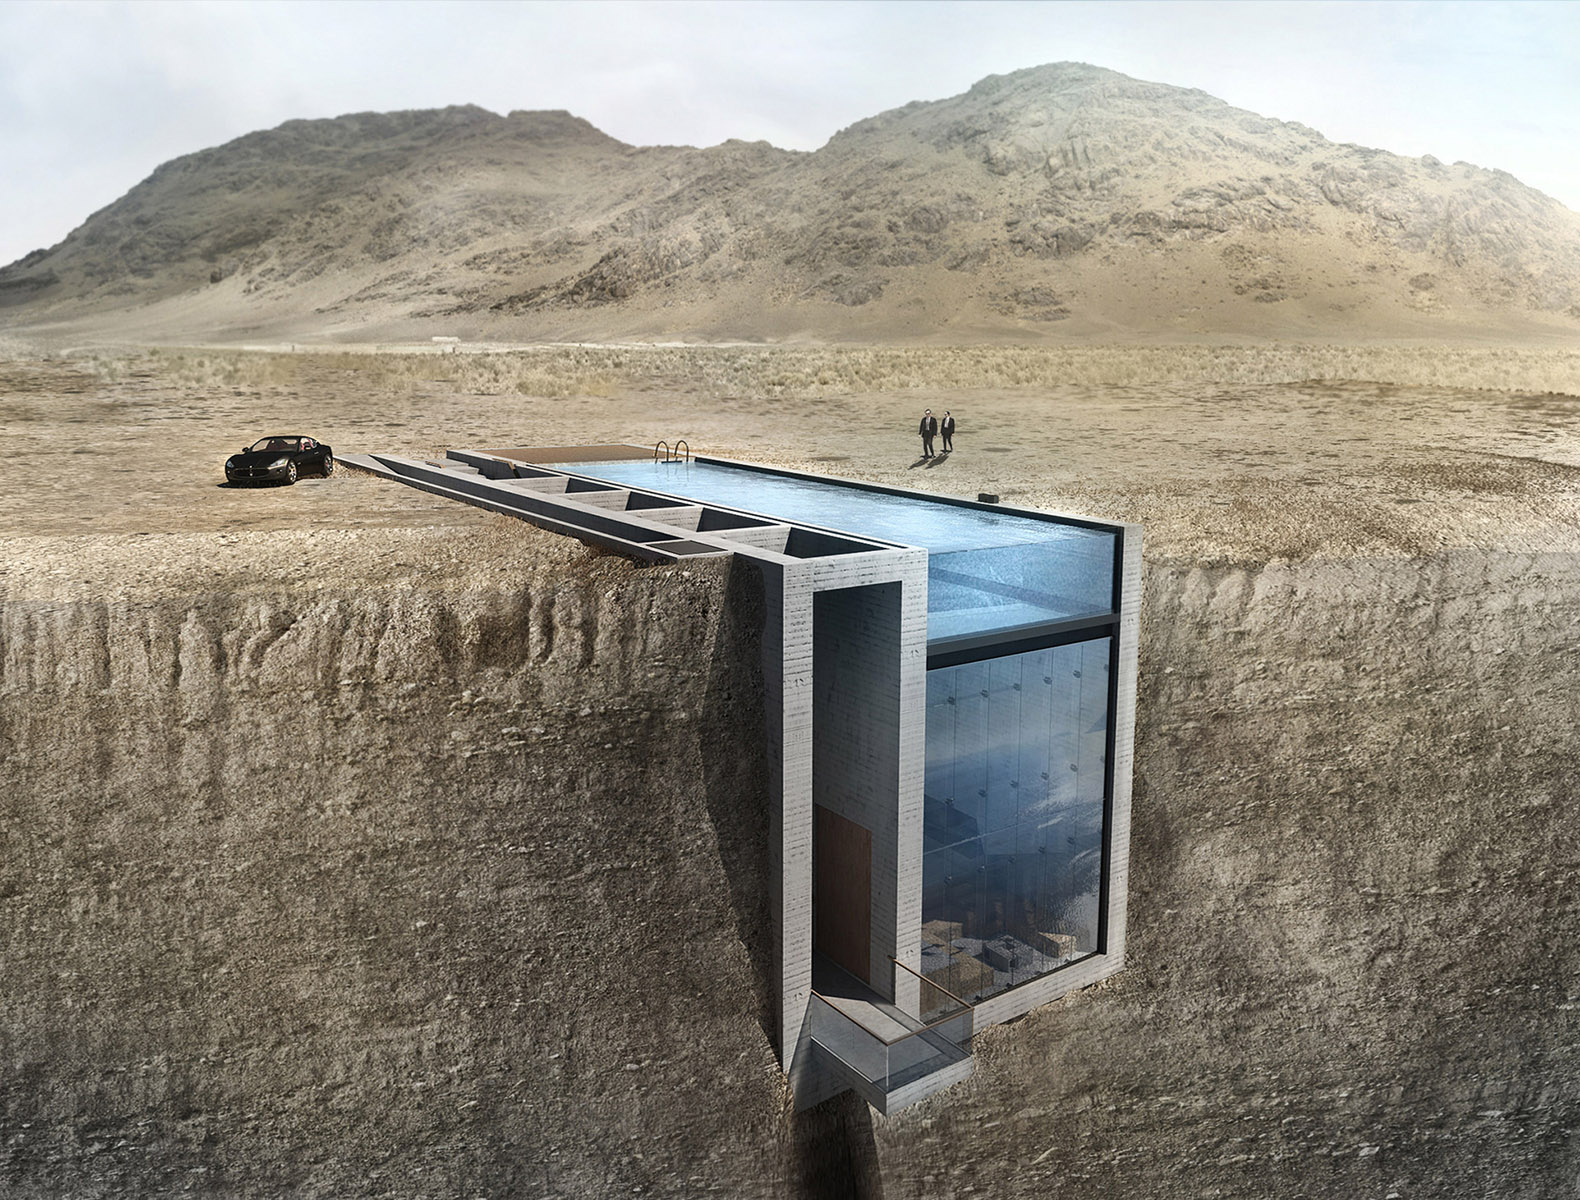 After going viral this unbelievable cliffside home is becoming a reality